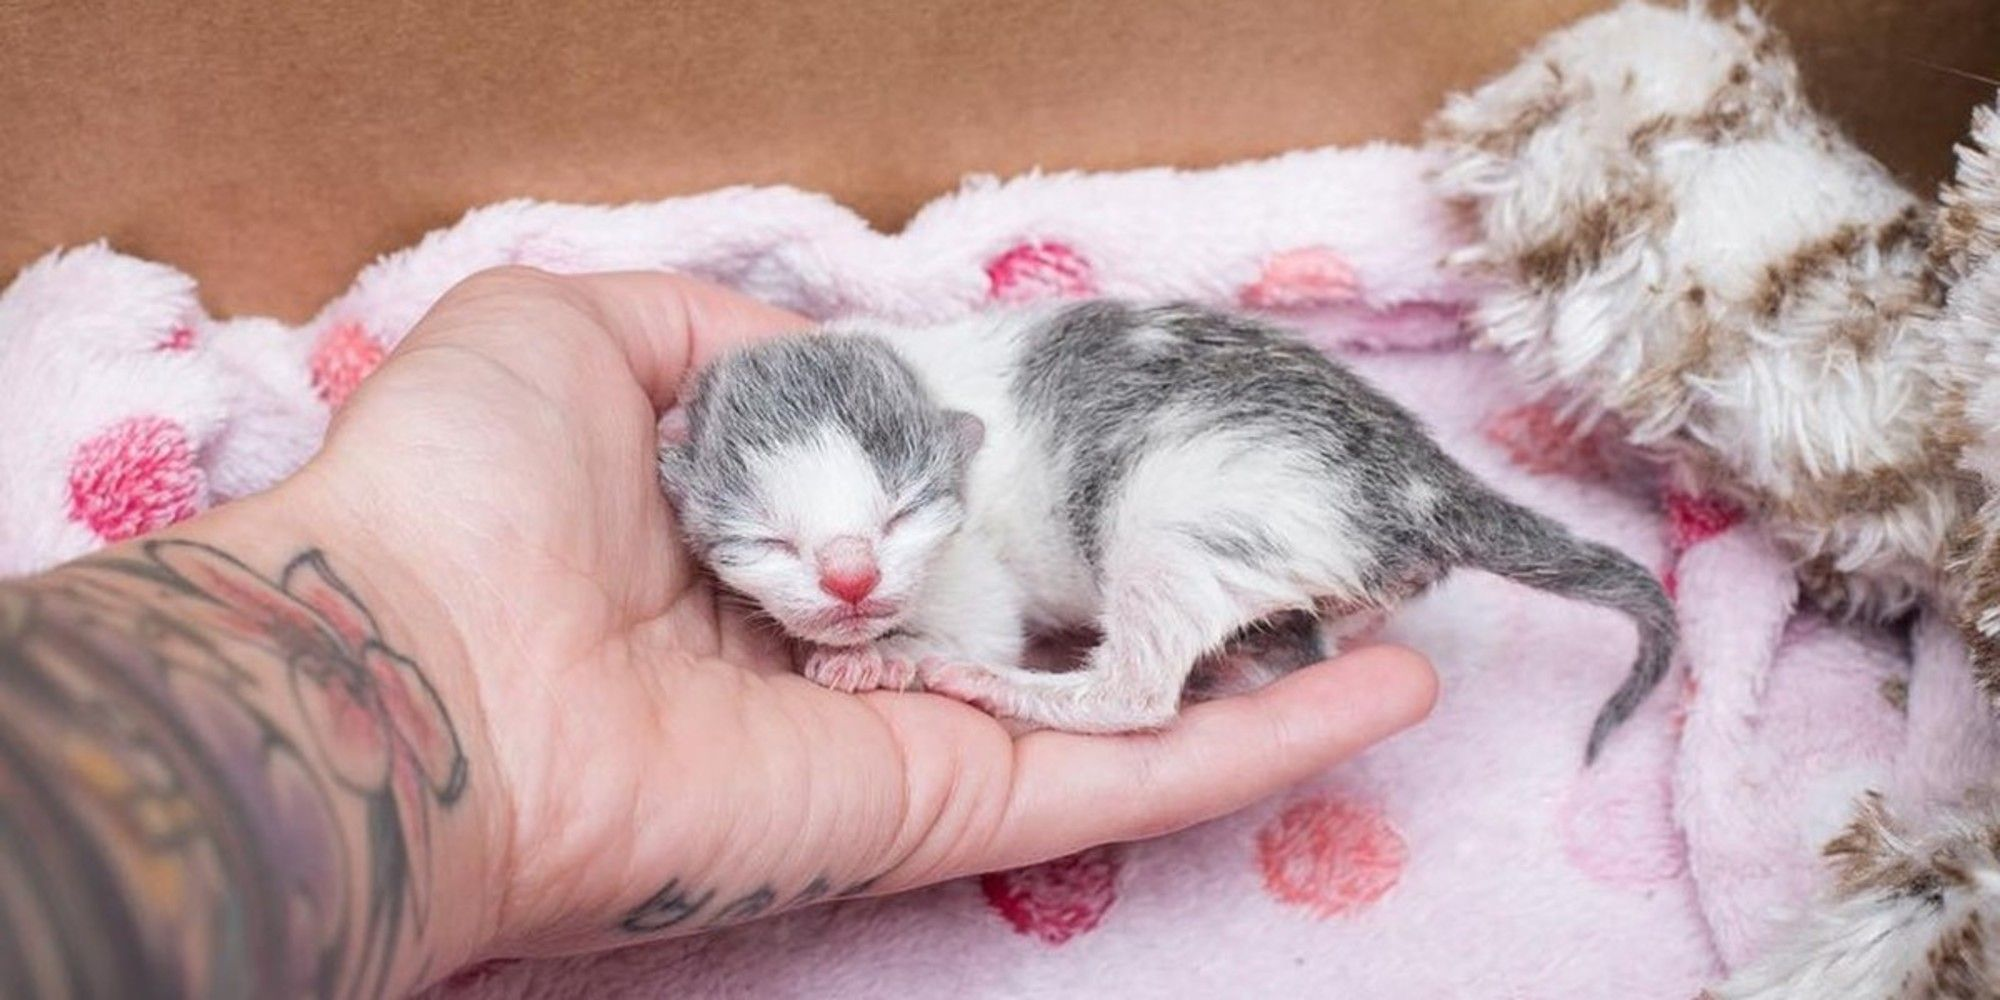 This Little Kitten Was Found Without A Mom At The Tender Age Of Just One Day Old His Eyes Were Still Closed Kittens Cutest Baby Cute Baby Animals Baby Kittens